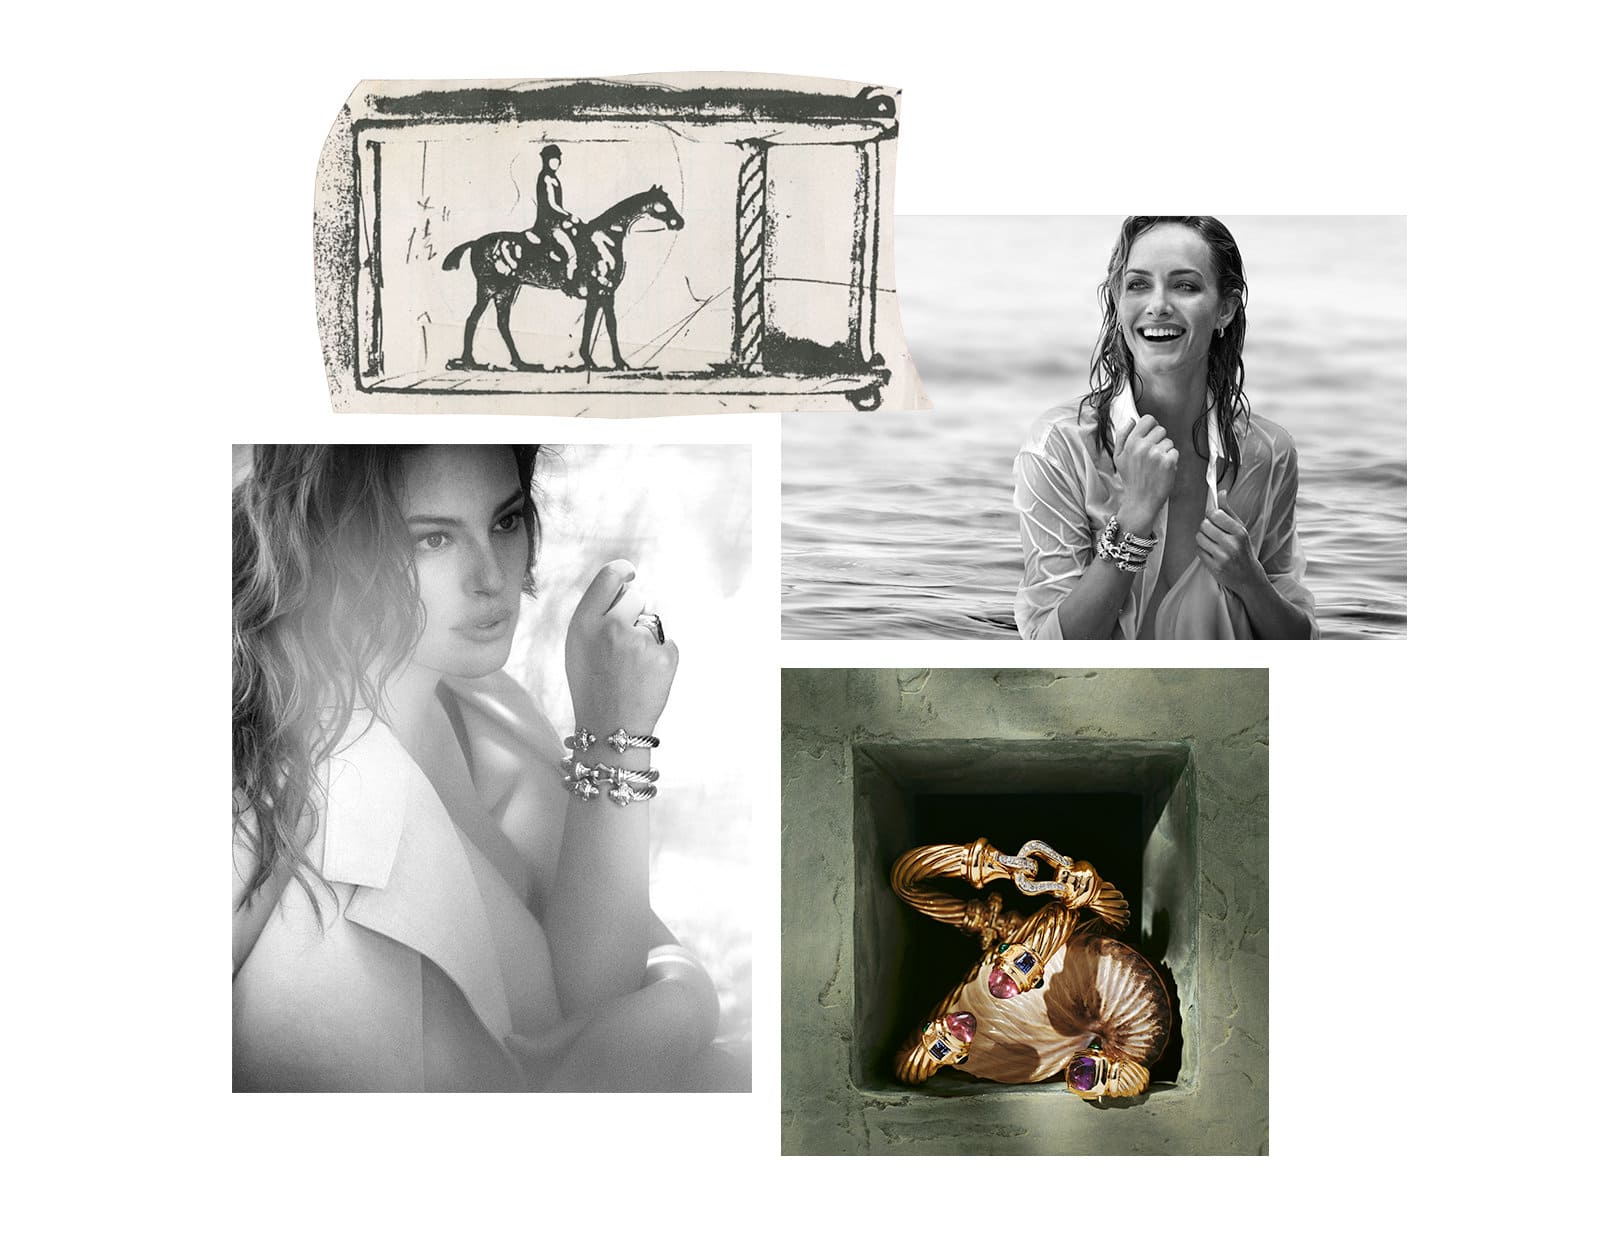 A collage of four images. Clockwise from top left: David Yurman's black-ink sketch of a belt buckle depicting a man riding a horse; a black-and-white photograph of model Amber Valletta; a golden stone shadowbox with a seashell; a black-and-white photo of model Ashley Graham